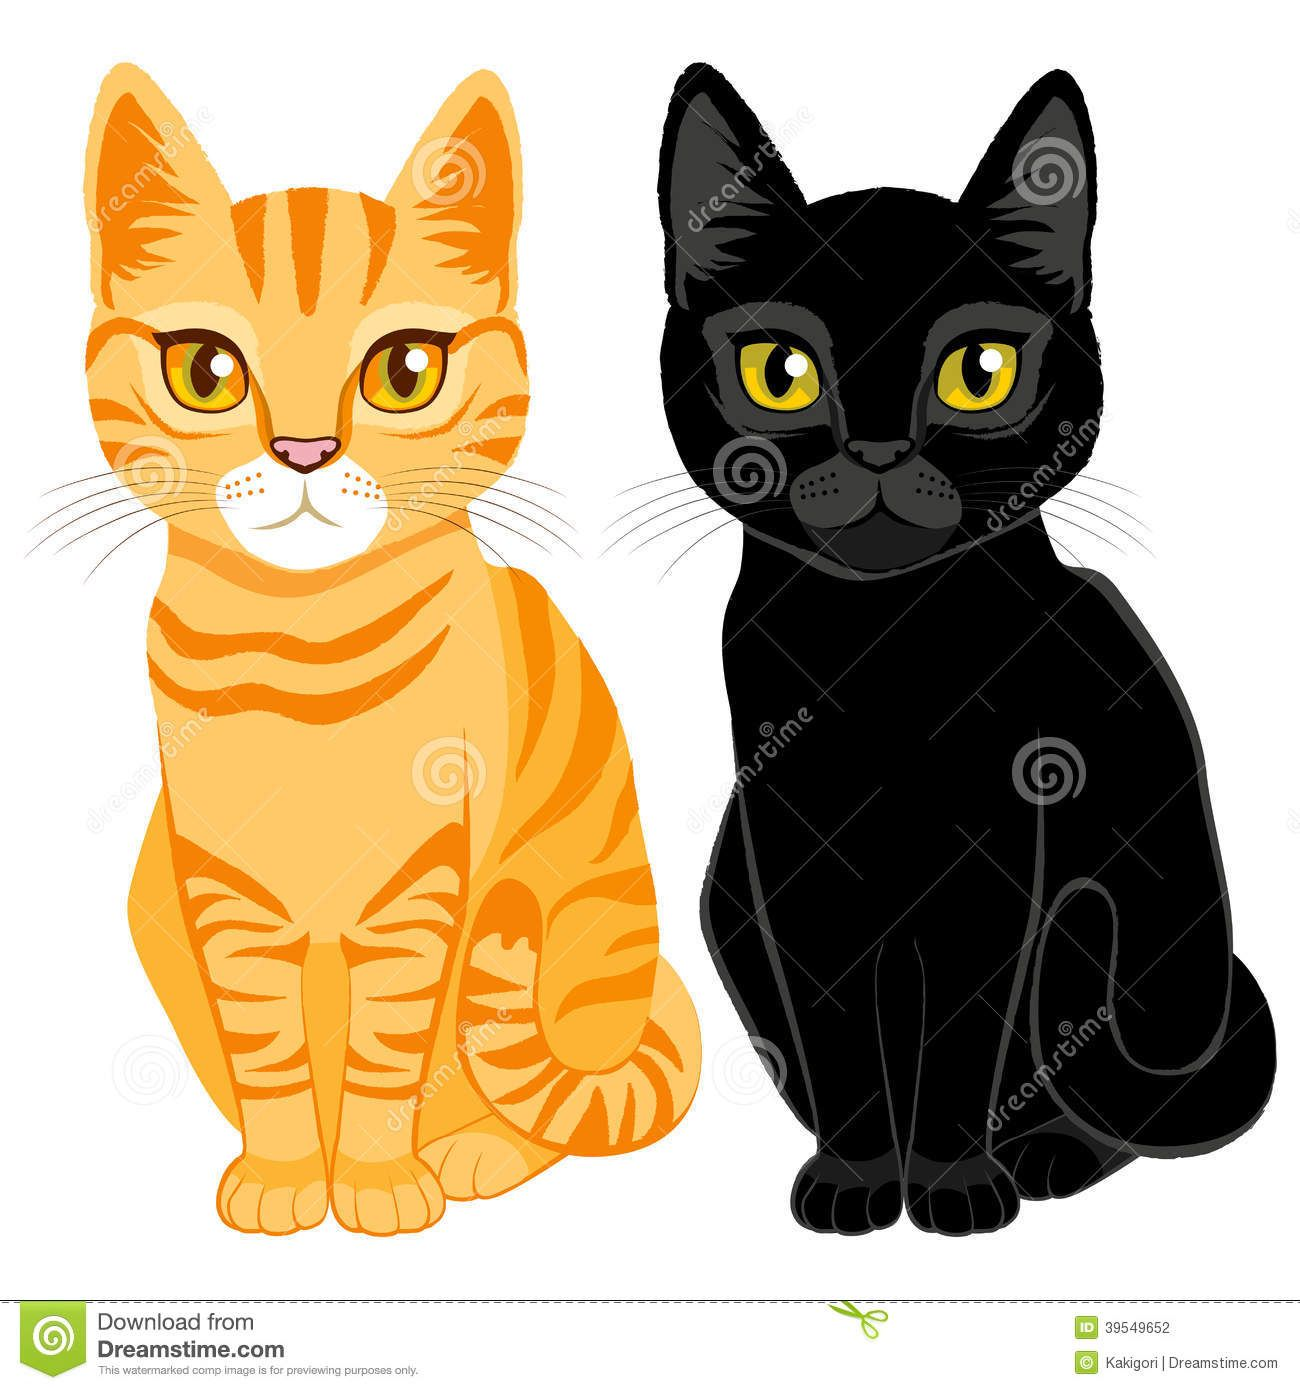 Tabby And Black Cats Download From Over 68 Million High Quality Stock Photos Images Vectors Sign Up For Fr Black Cat Artwork Black Cat Tattoos Cat Clipart